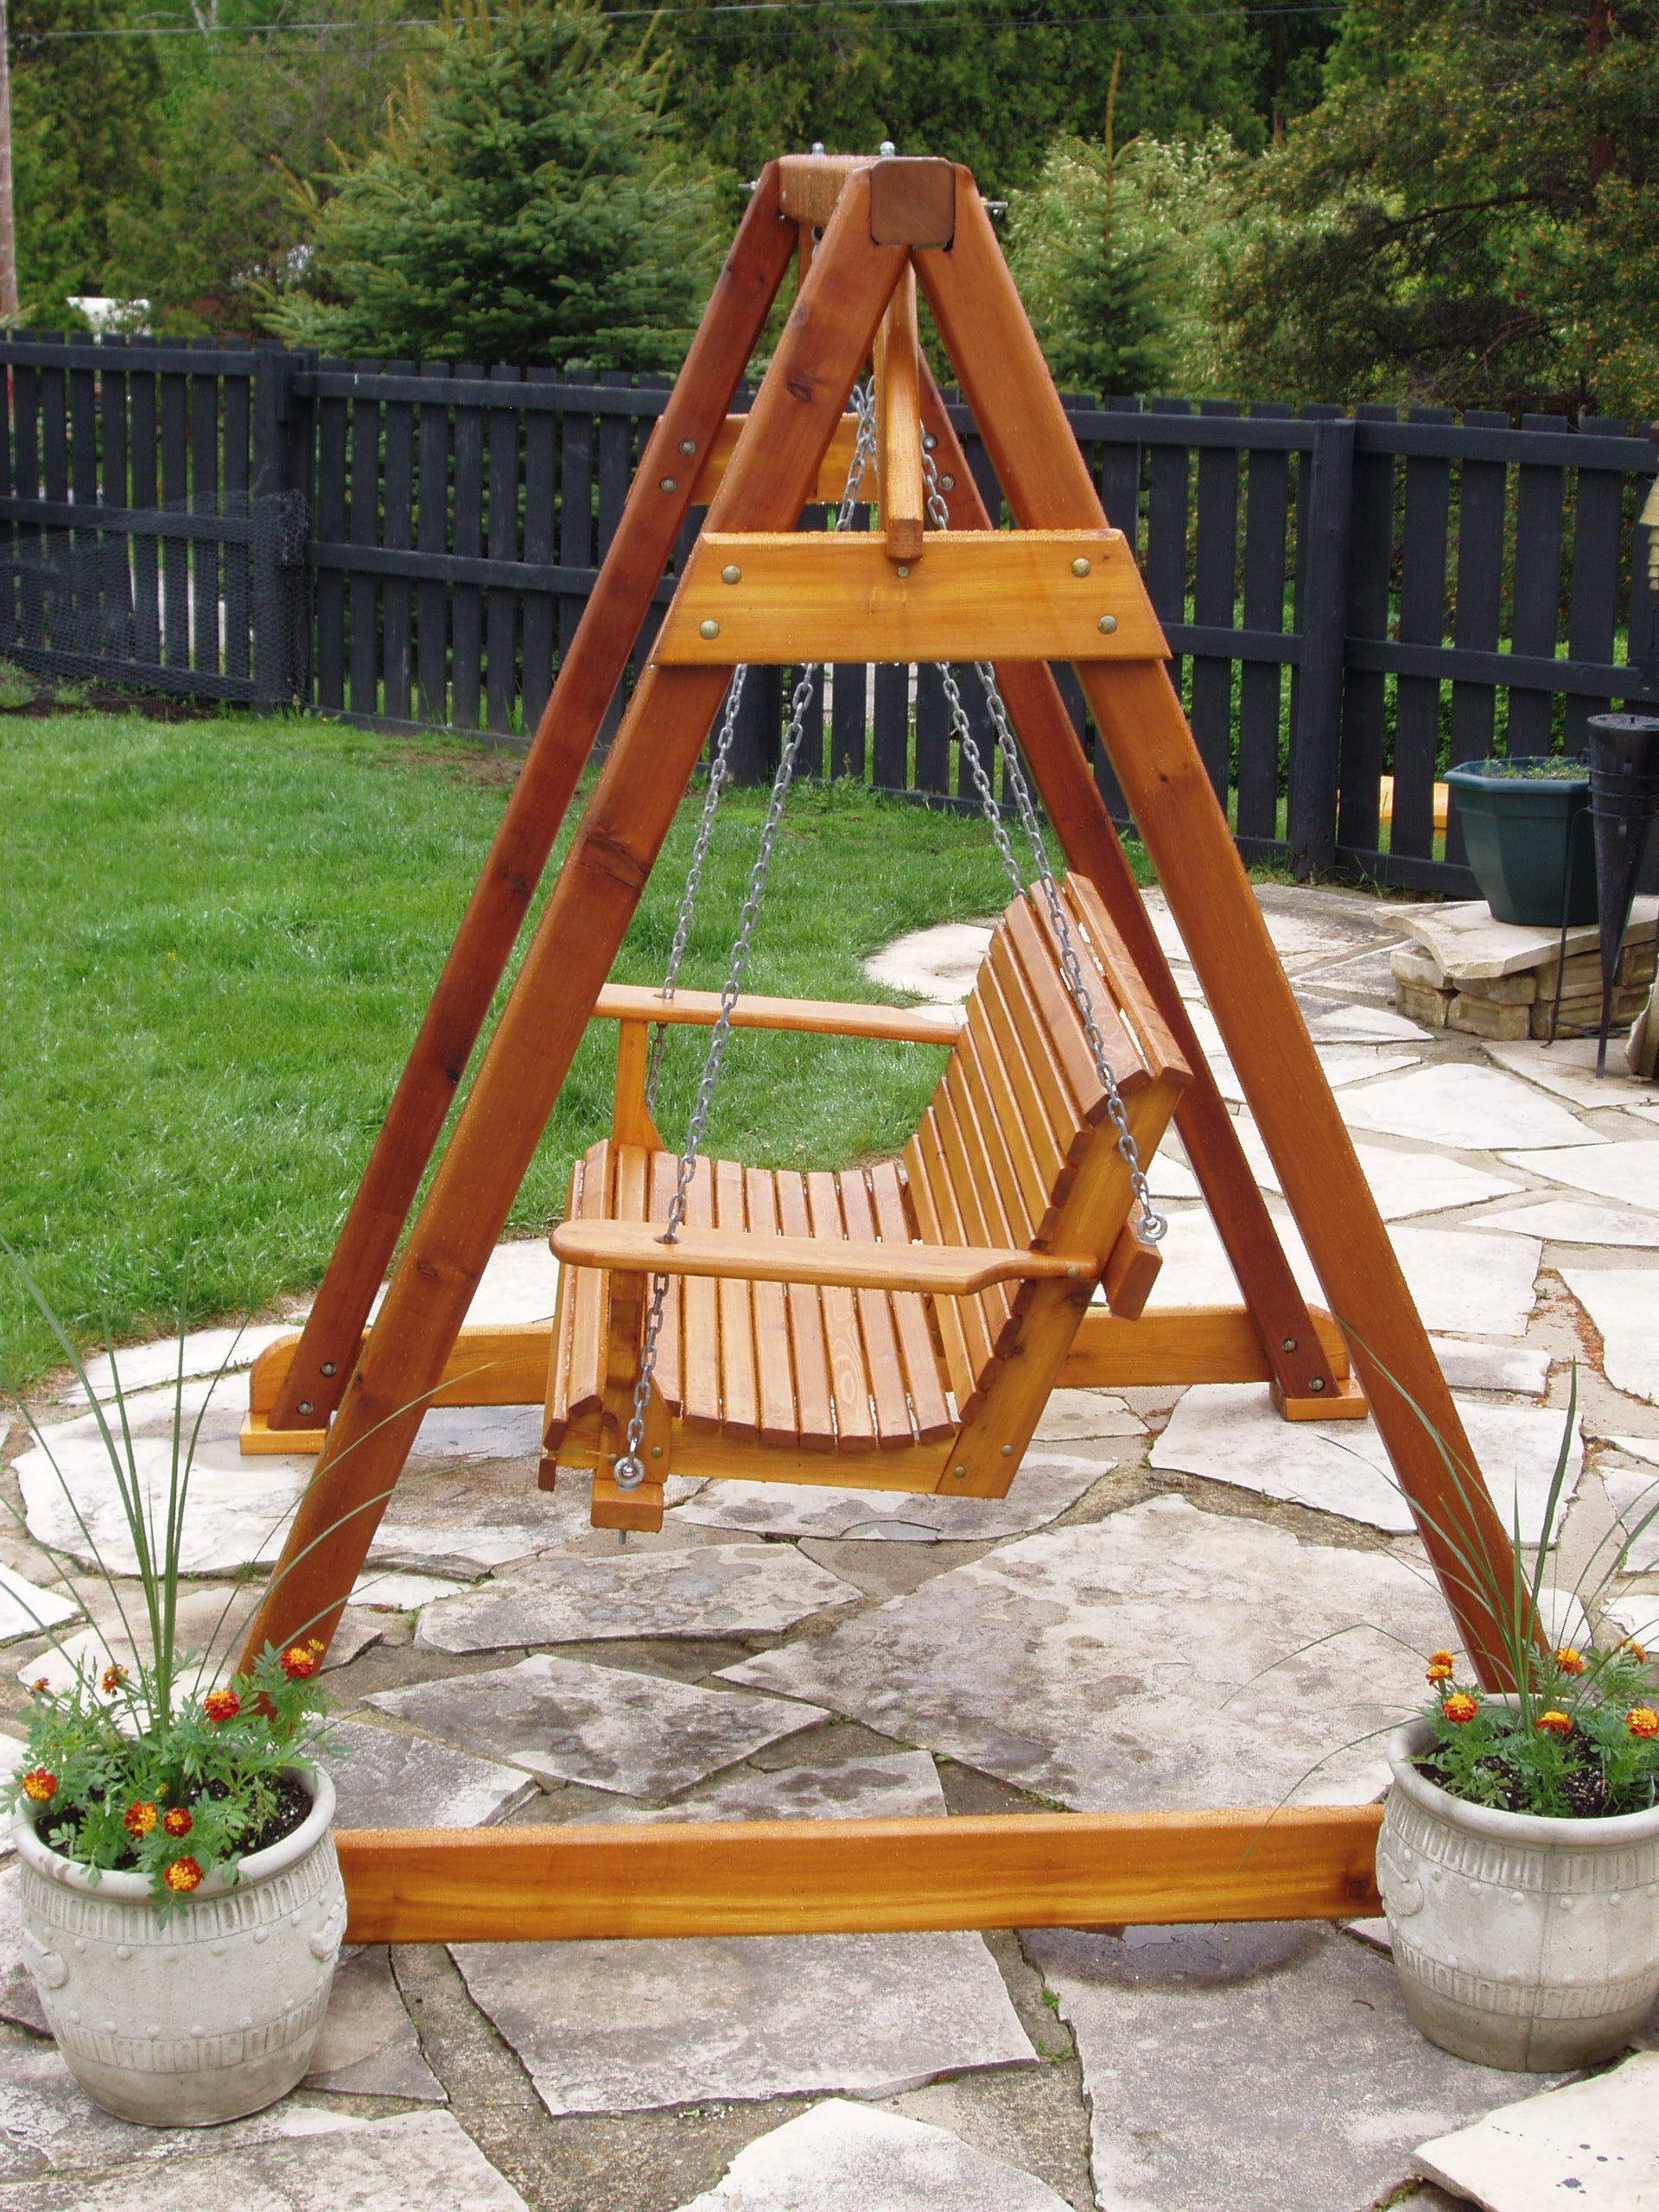 2020 Porch Swings With Stand Intended For Build Diy How To Build A Frame Porch Swing Stand Pdf Plans (Gallery 6 of 25)